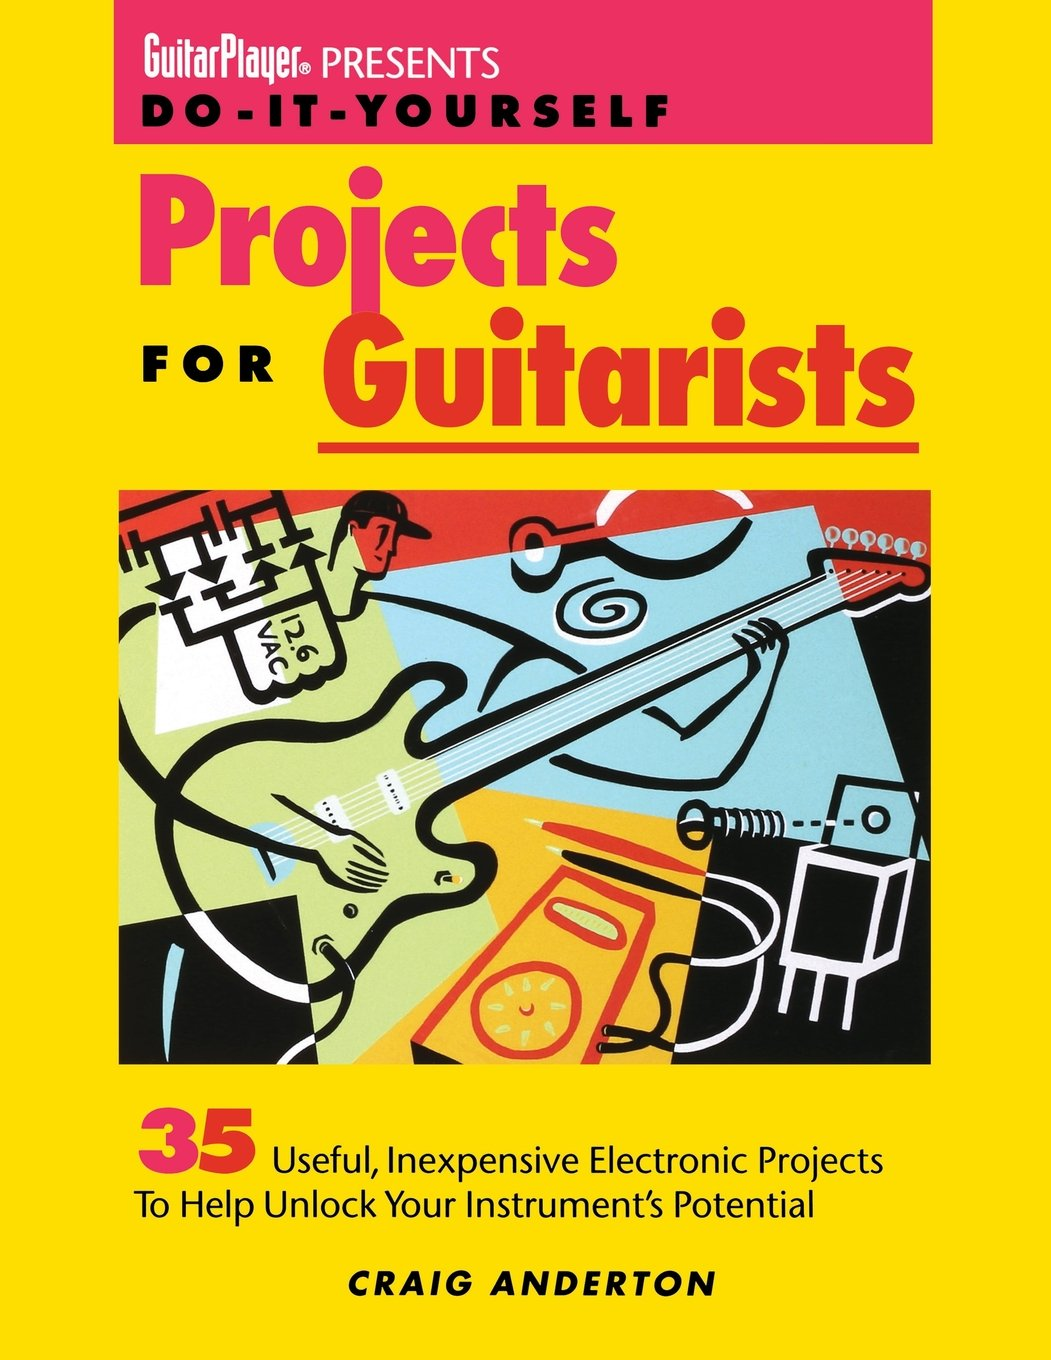 Guitar player presents do it yourself projects for guitarists craig guitar player presents do it yourself projects for guitarists craig anderton 9780879303594 books amazon solutioingenieria Images